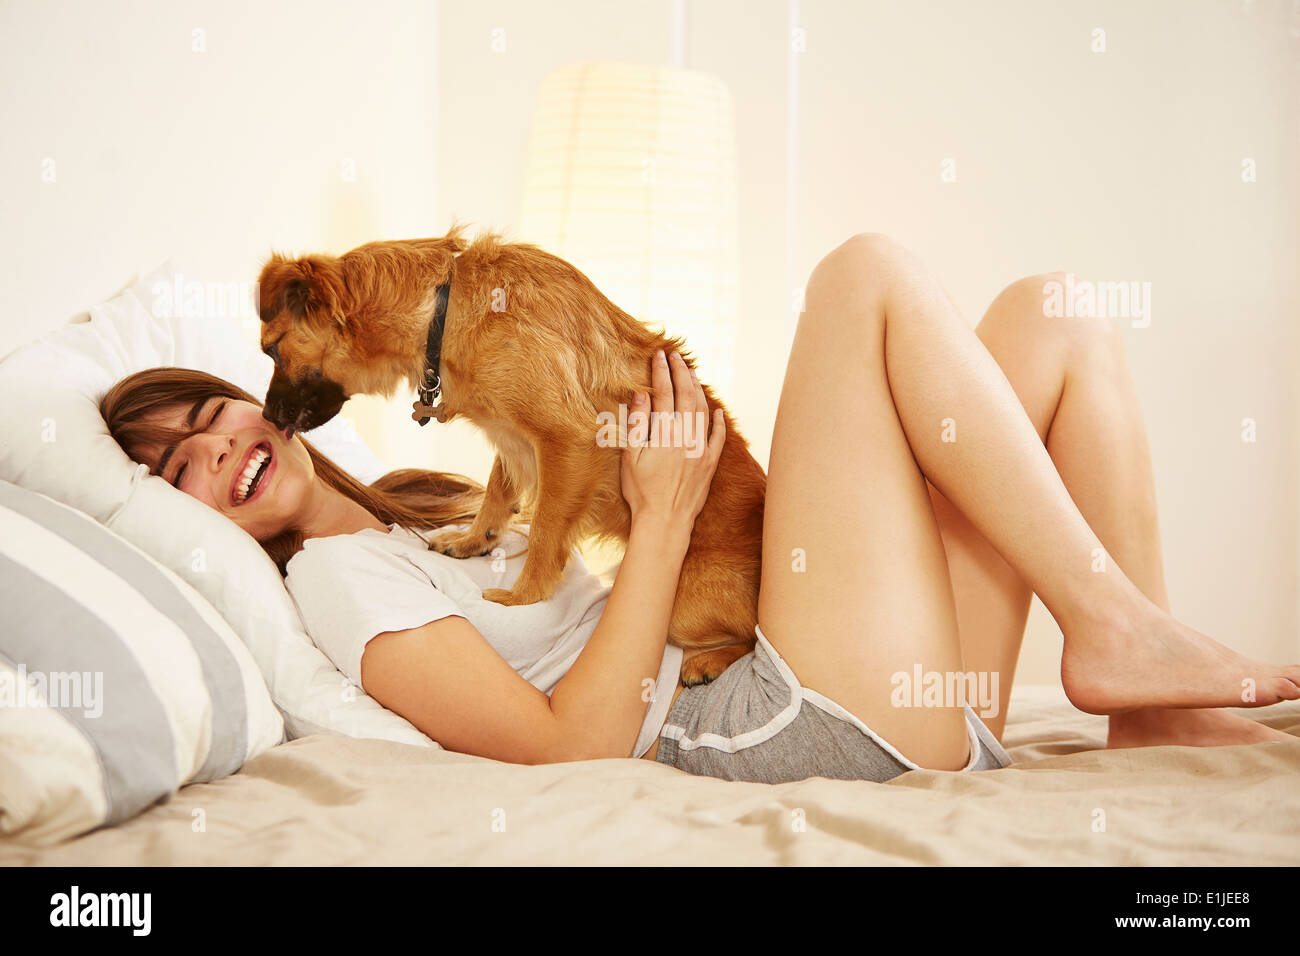 Young woman lying on bed having face licked by pet dog - Stock Image